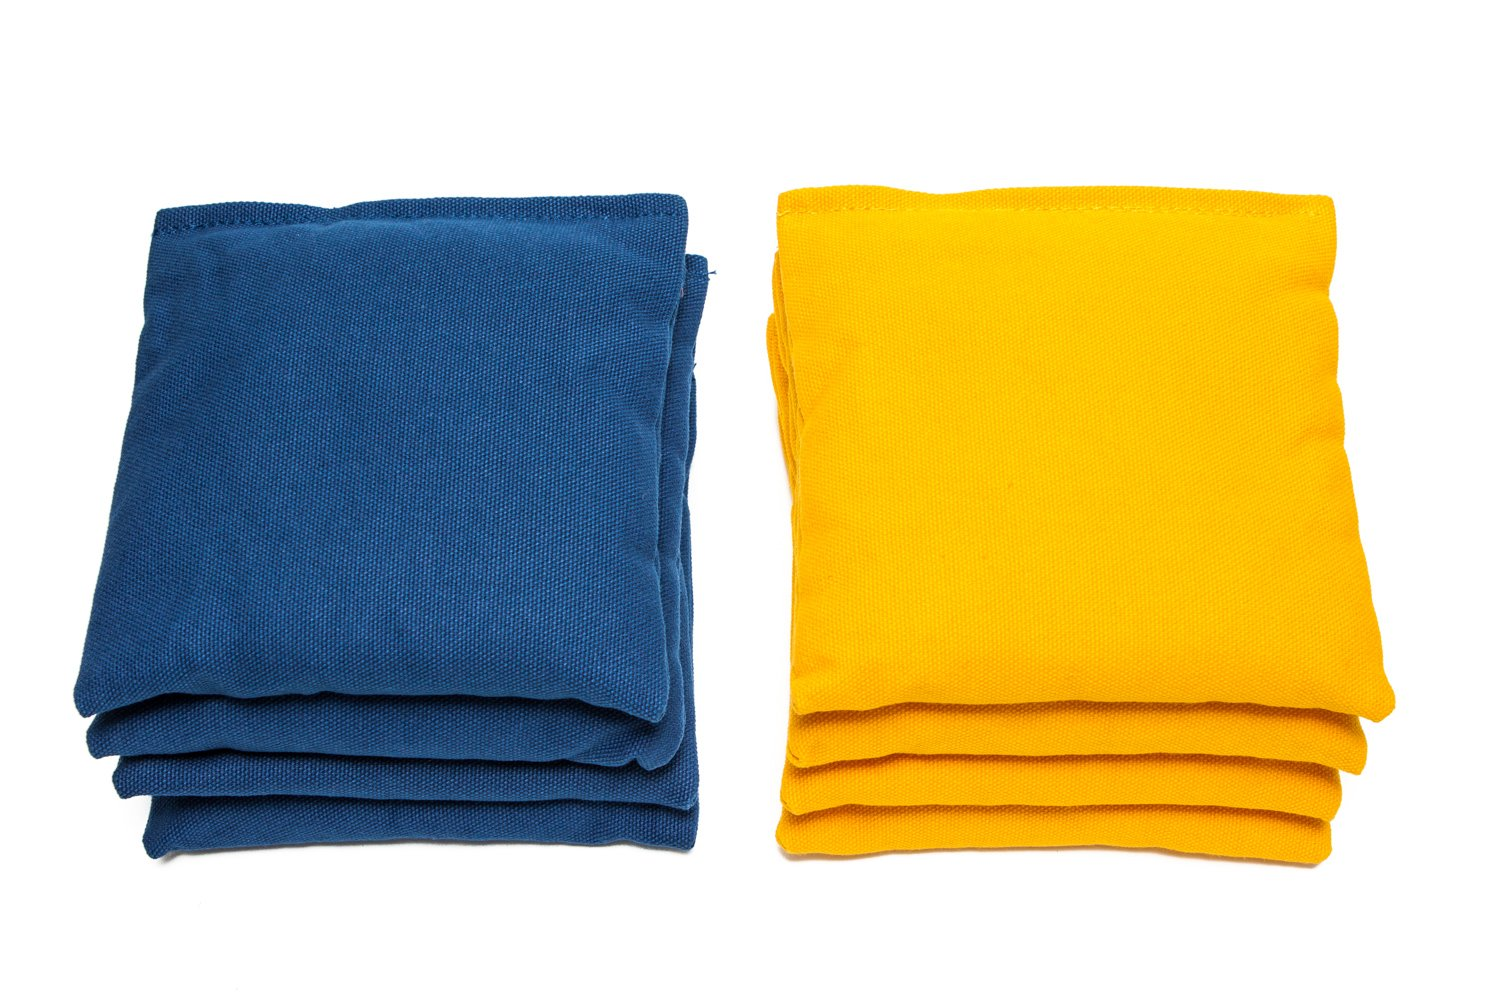 Weather Resistant Cornhole Bags (Set of 8) by SC Cornhole (Royal Blue/Yellow) by SC Cornhole Games